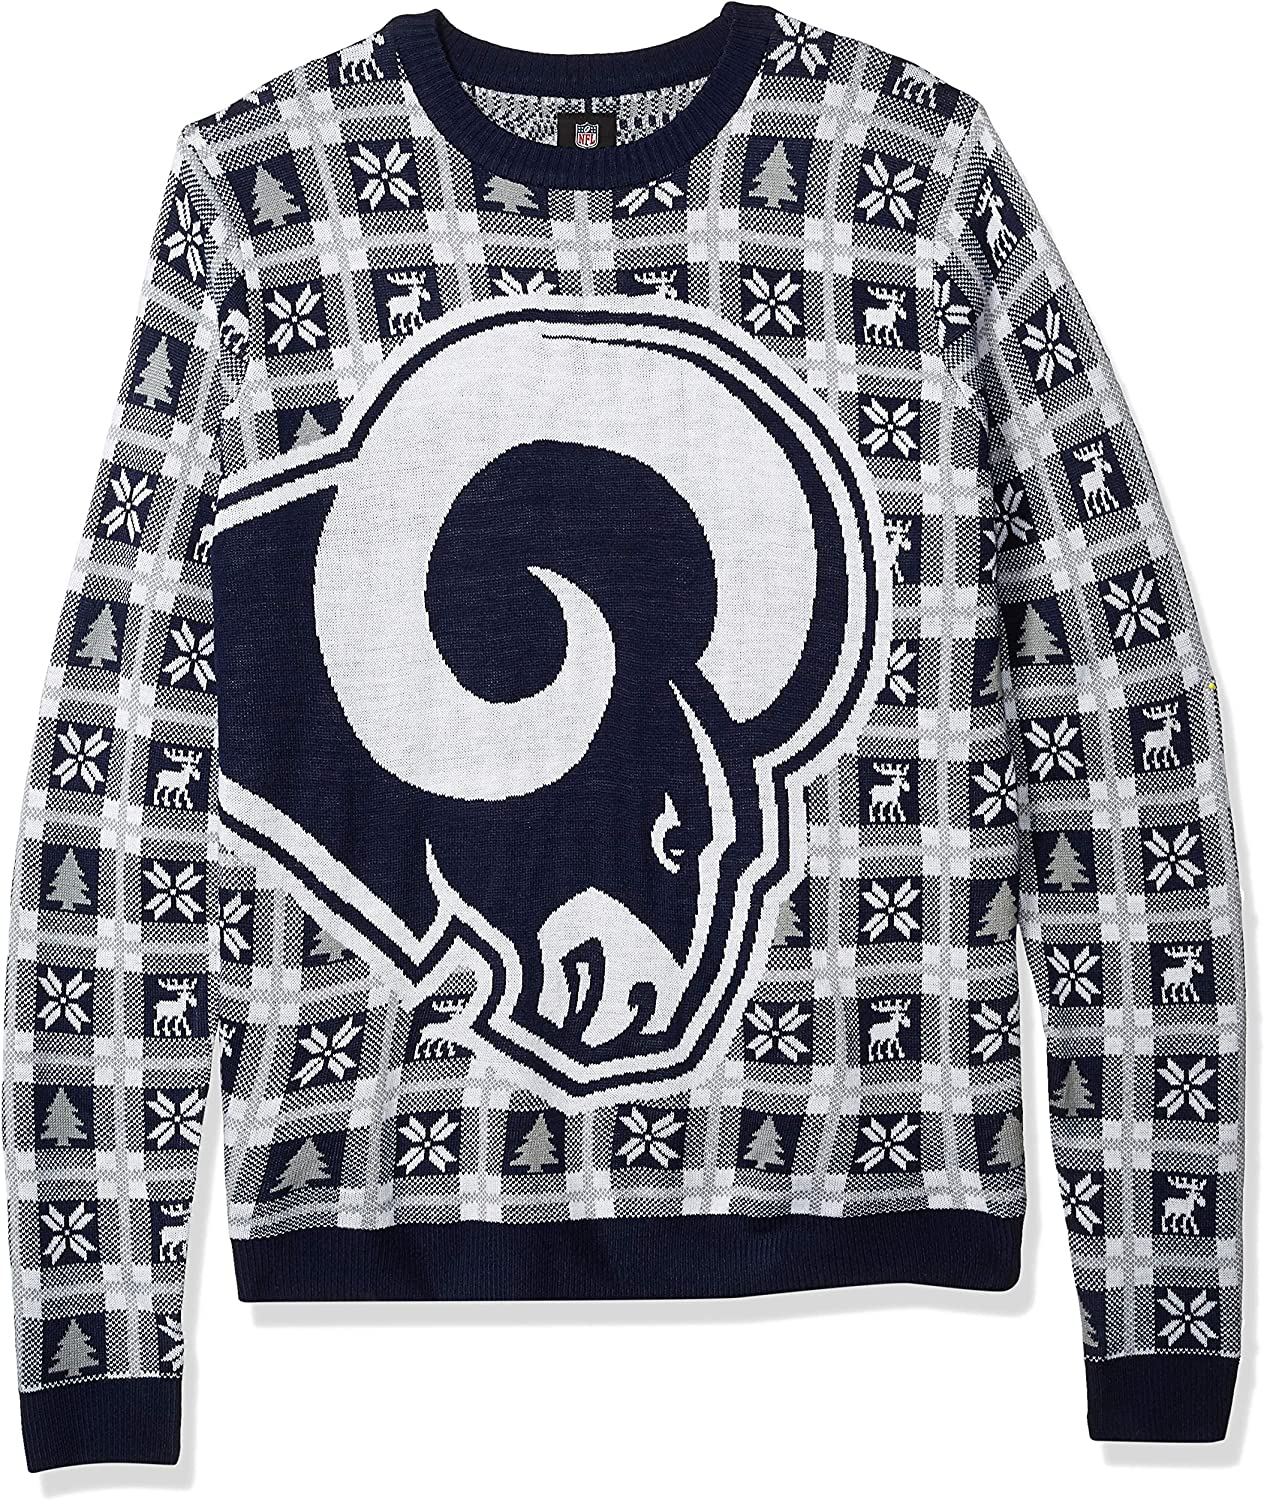 FOCO Ranking TOP10 NFL Mens 2018 Big Inventory cleanup selling sale Logo Sweater